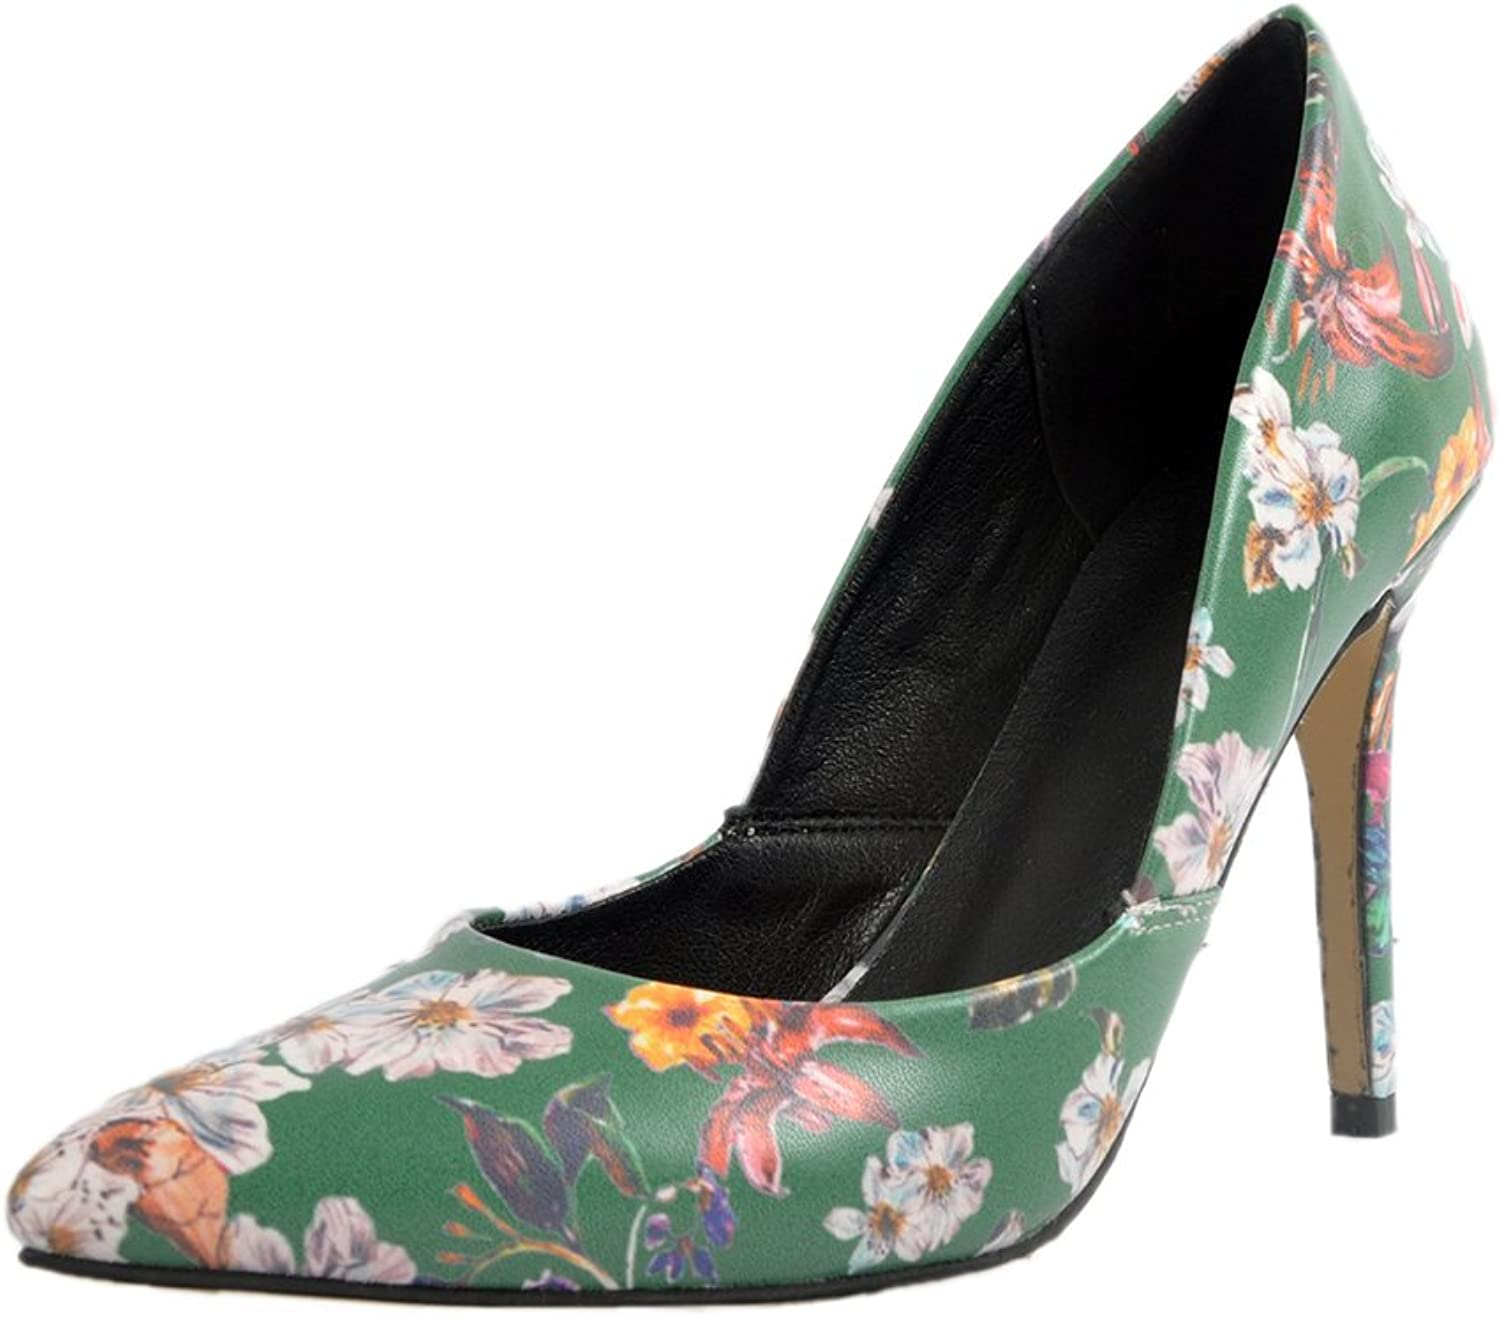 A-BUYBEA Women's Floral Leather Stiletto 4.33  Sky High Heel Dress Pump shoes Green